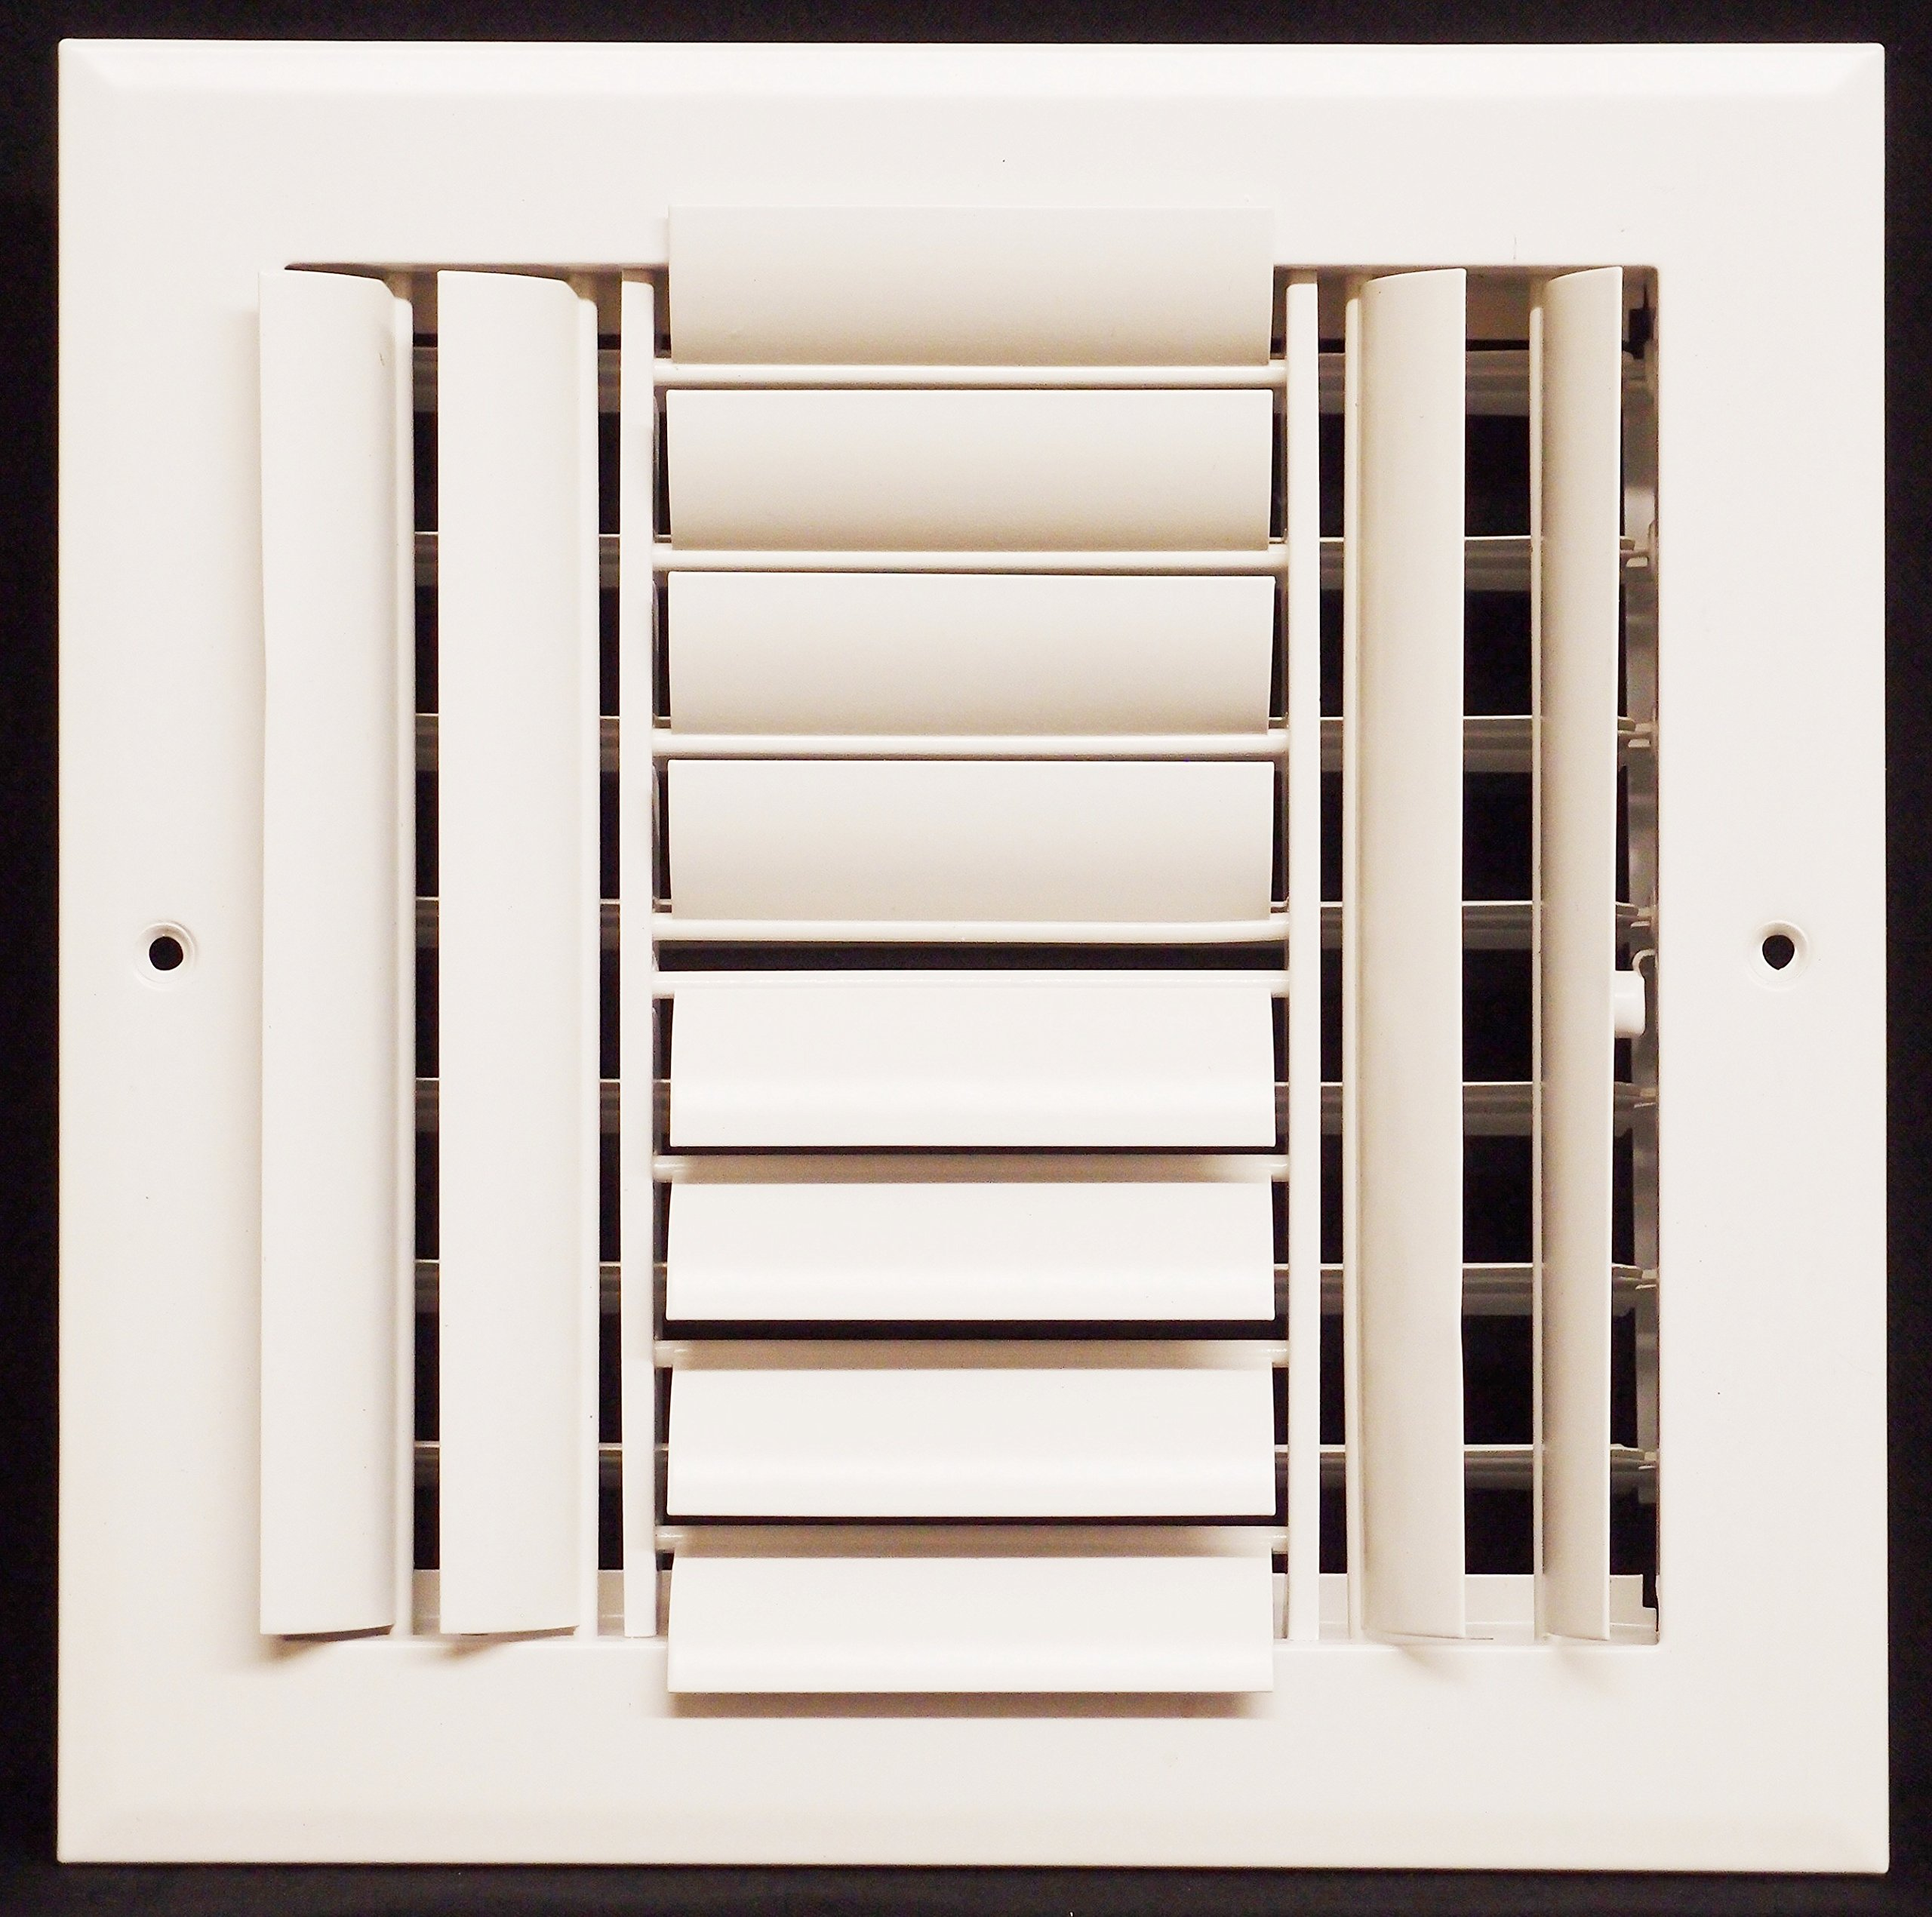 10'' x 10'' - 4-Way Air Vent - Adjustable Aluminum Curved Blades - Maximum Air Flow - HVAC Grille